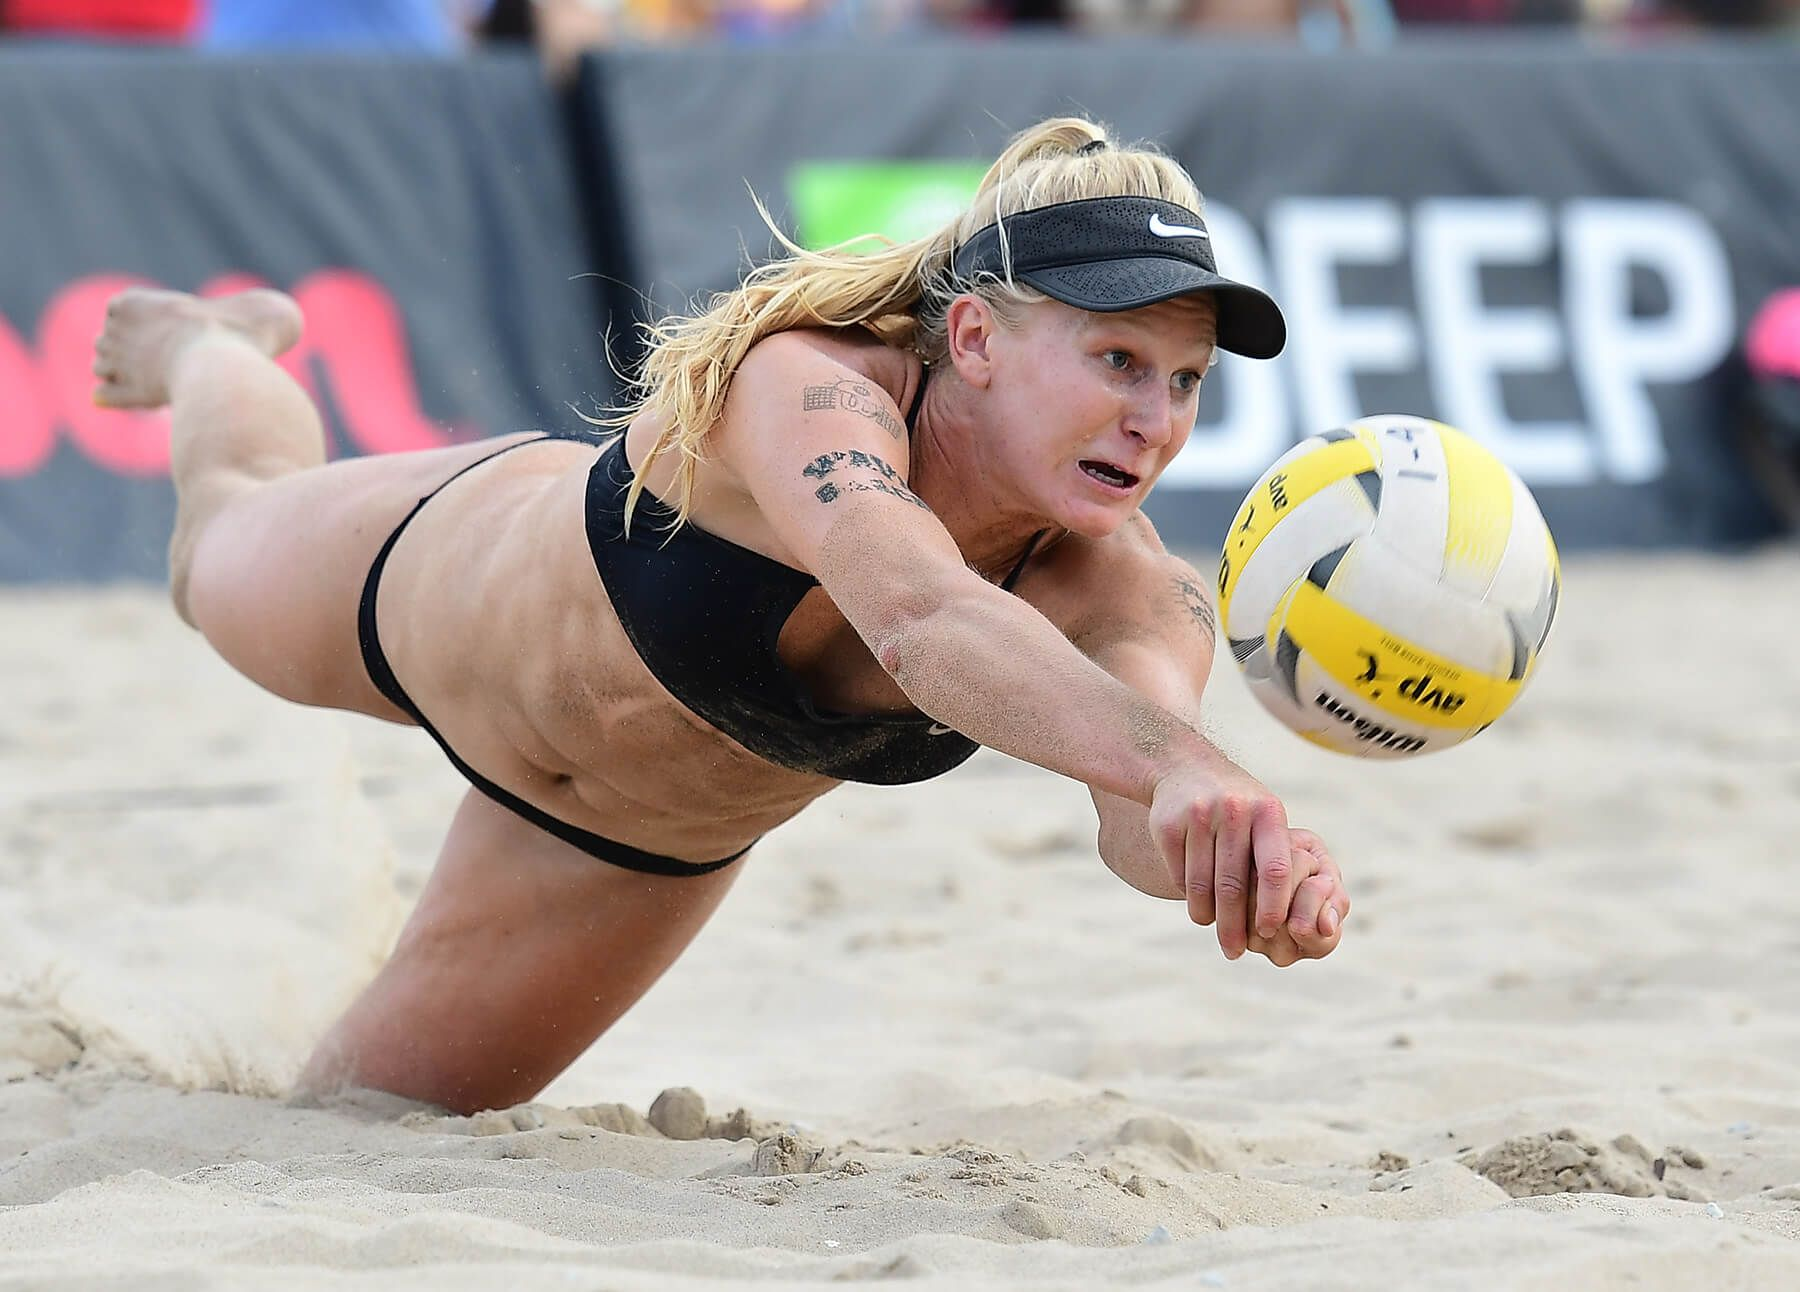 Avp Gold Series The Championships 2018 Photo Gallery The Championship Beach Volleyball Photo